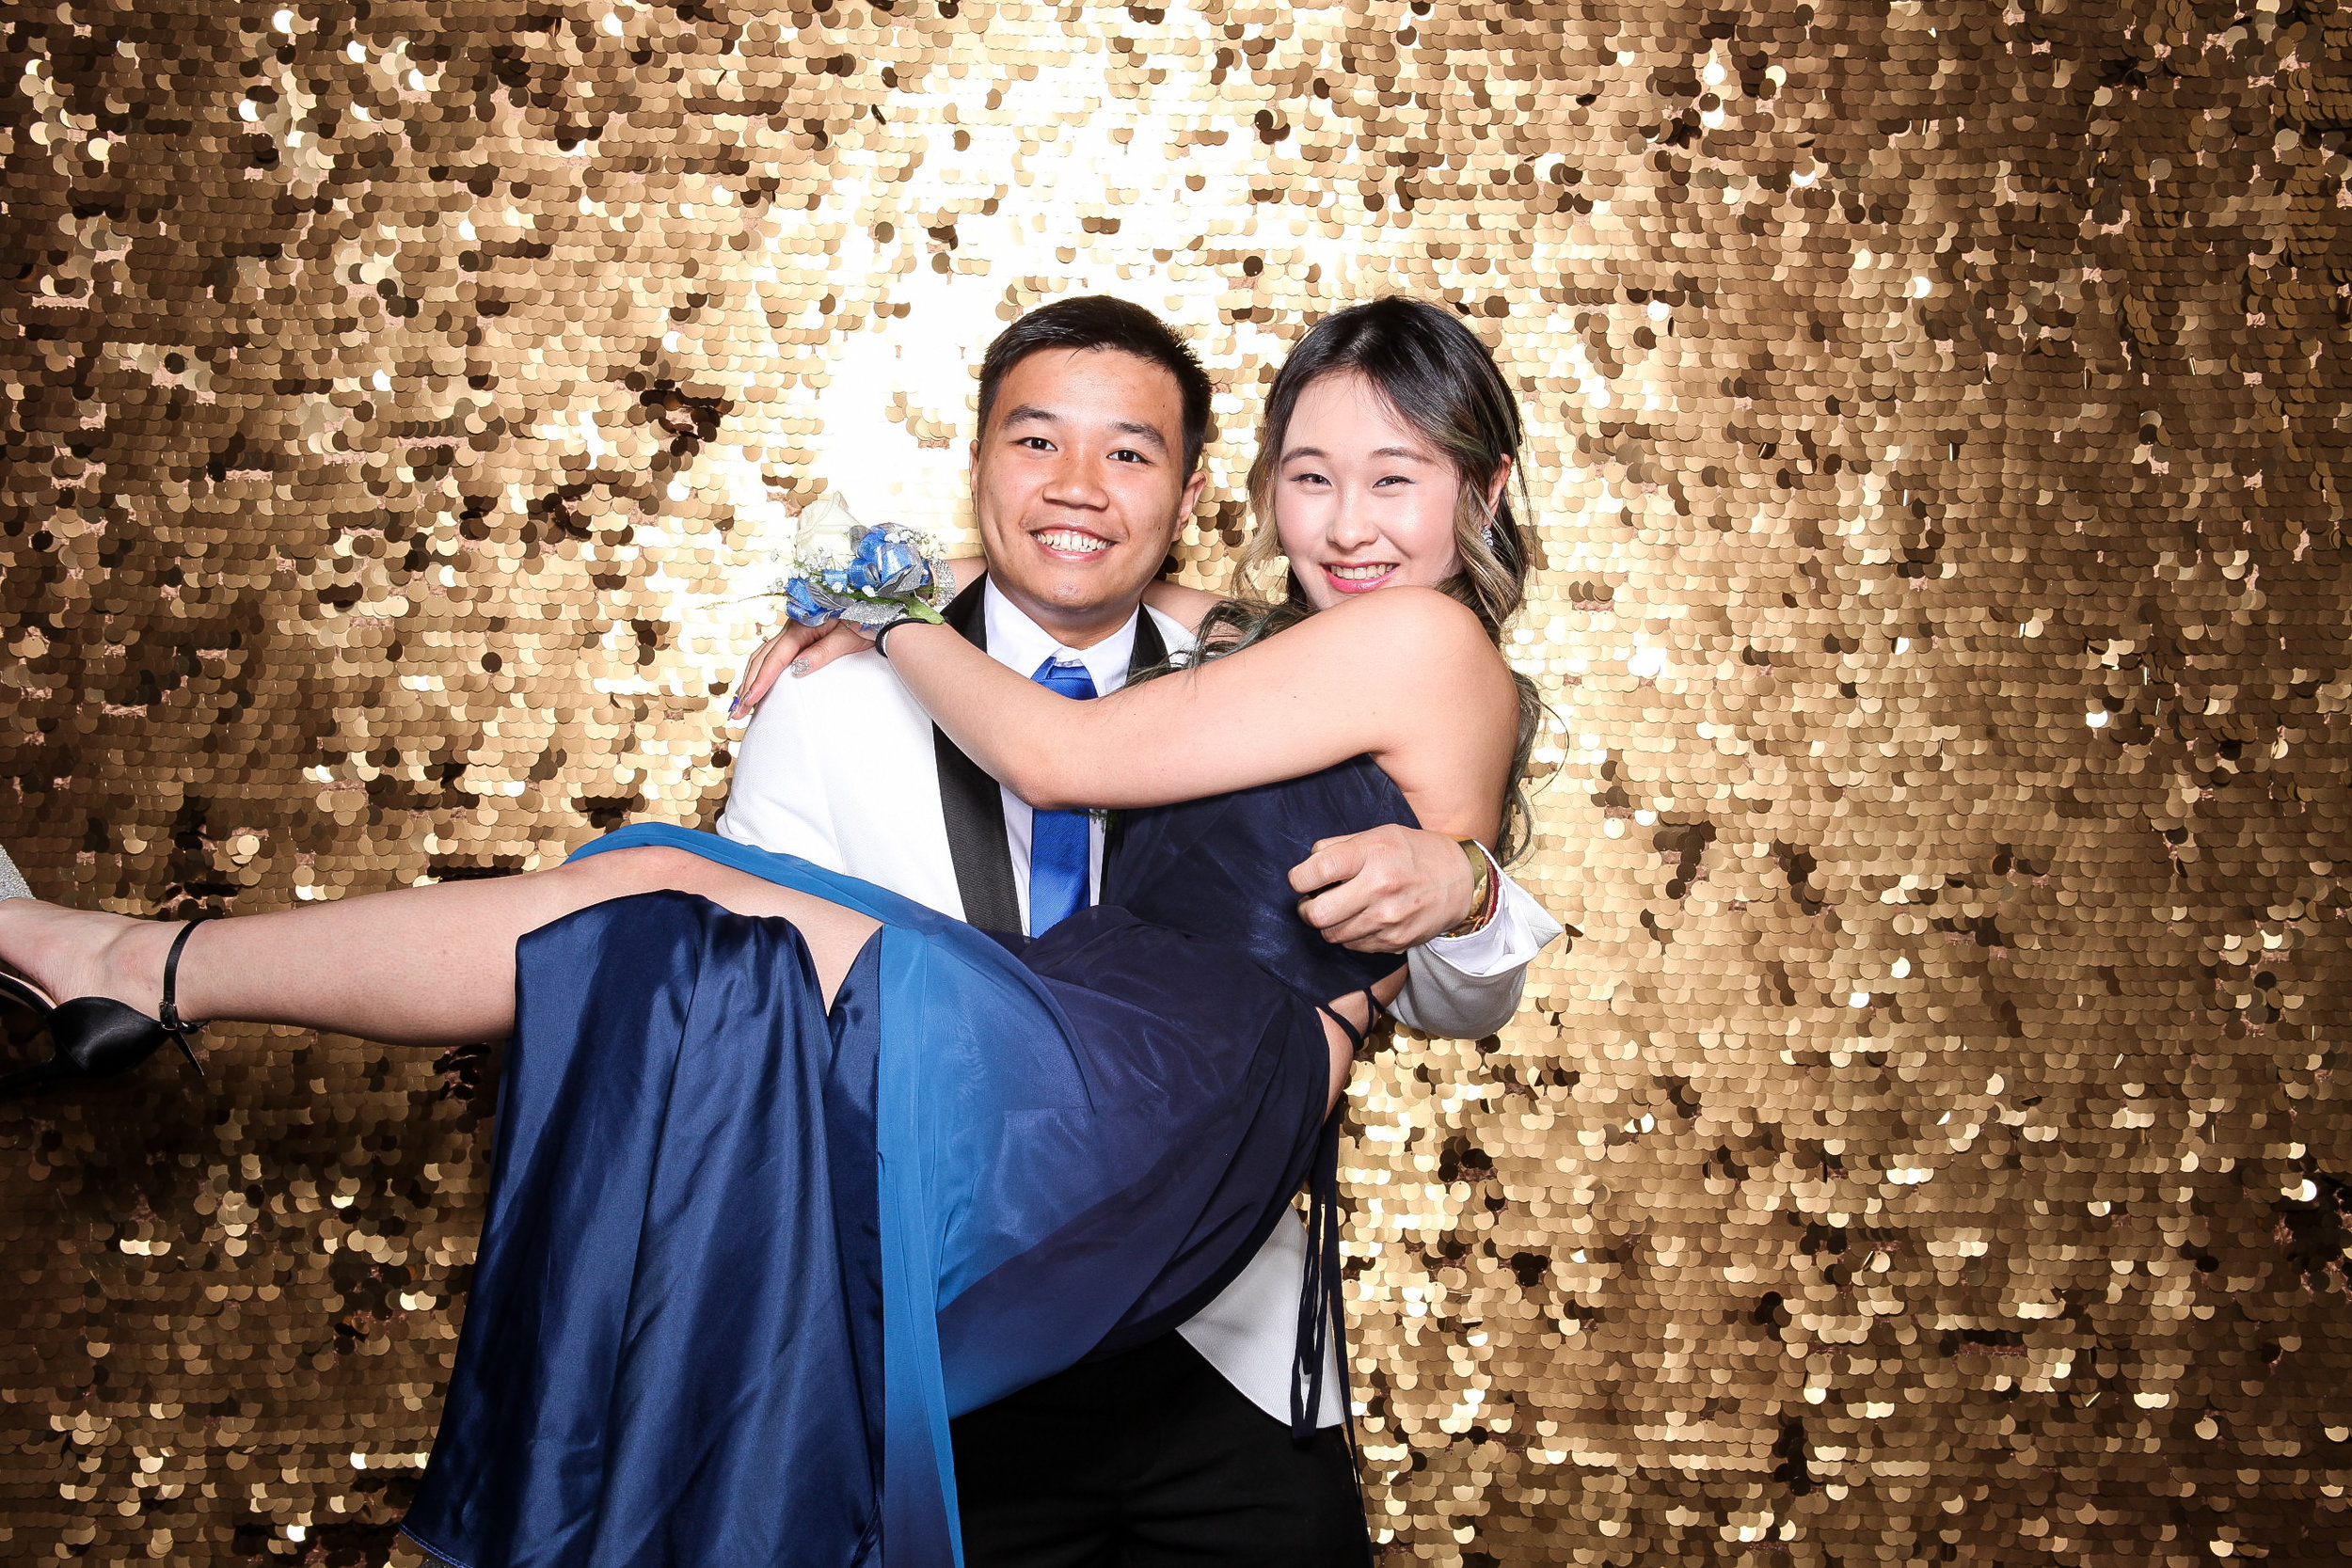 20190503_Adelphi_Senior_Formal-064.jpg